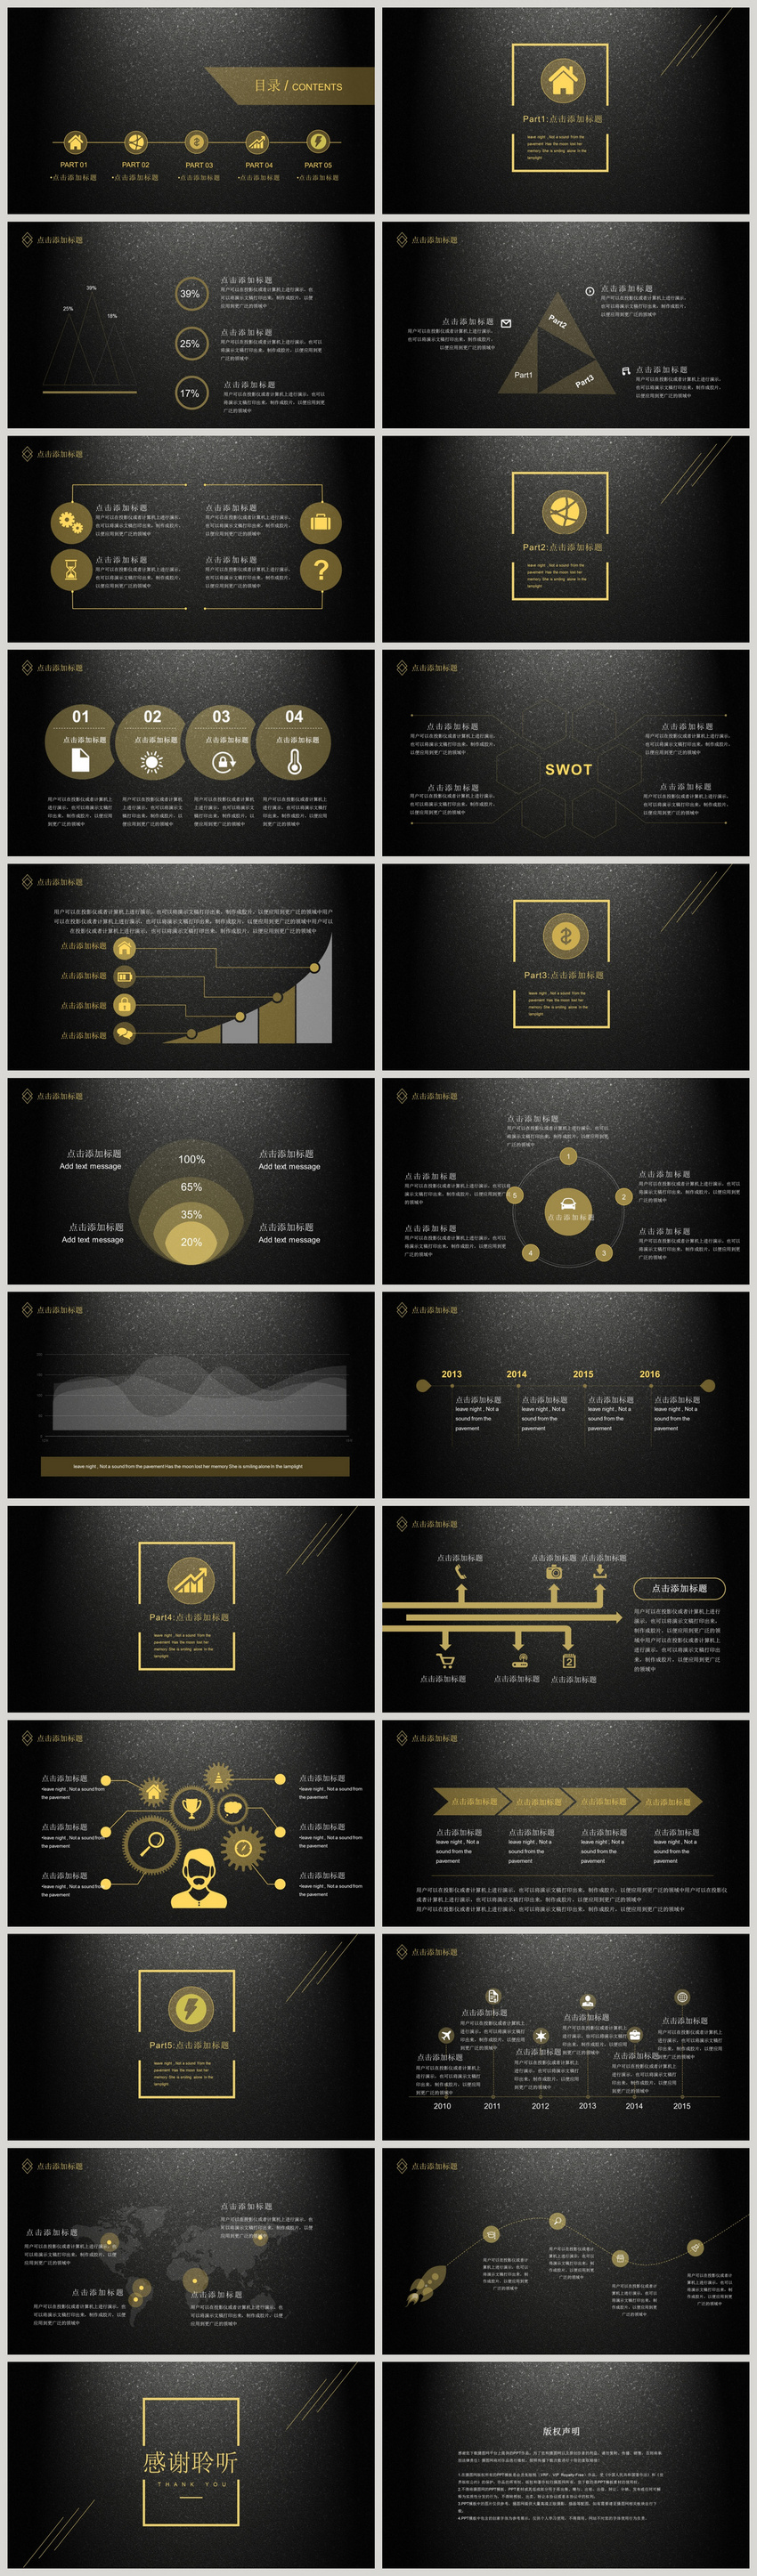 Black Gold Business Proposal Ppt Template Powerpoint Templete Ppt Free Download 401262683 Lovepik Com